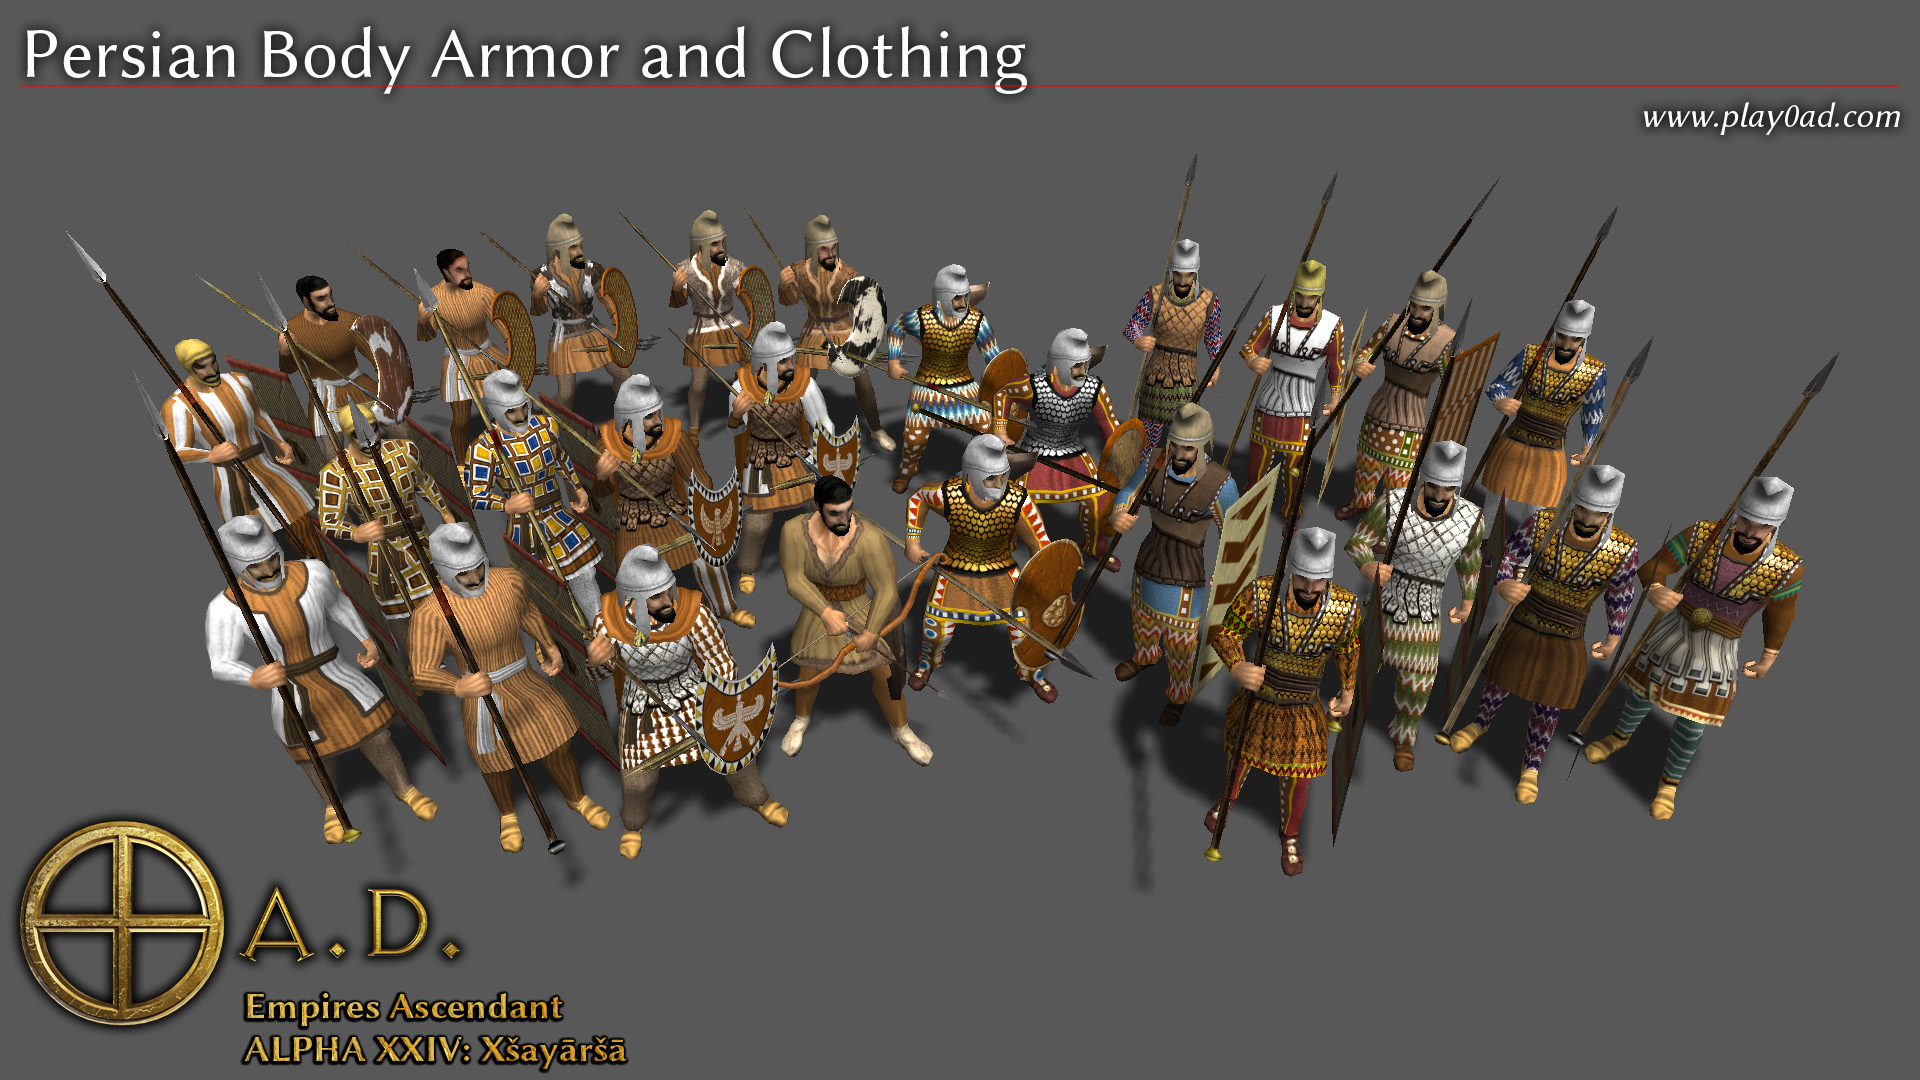 Persian Body Armor and Clothing